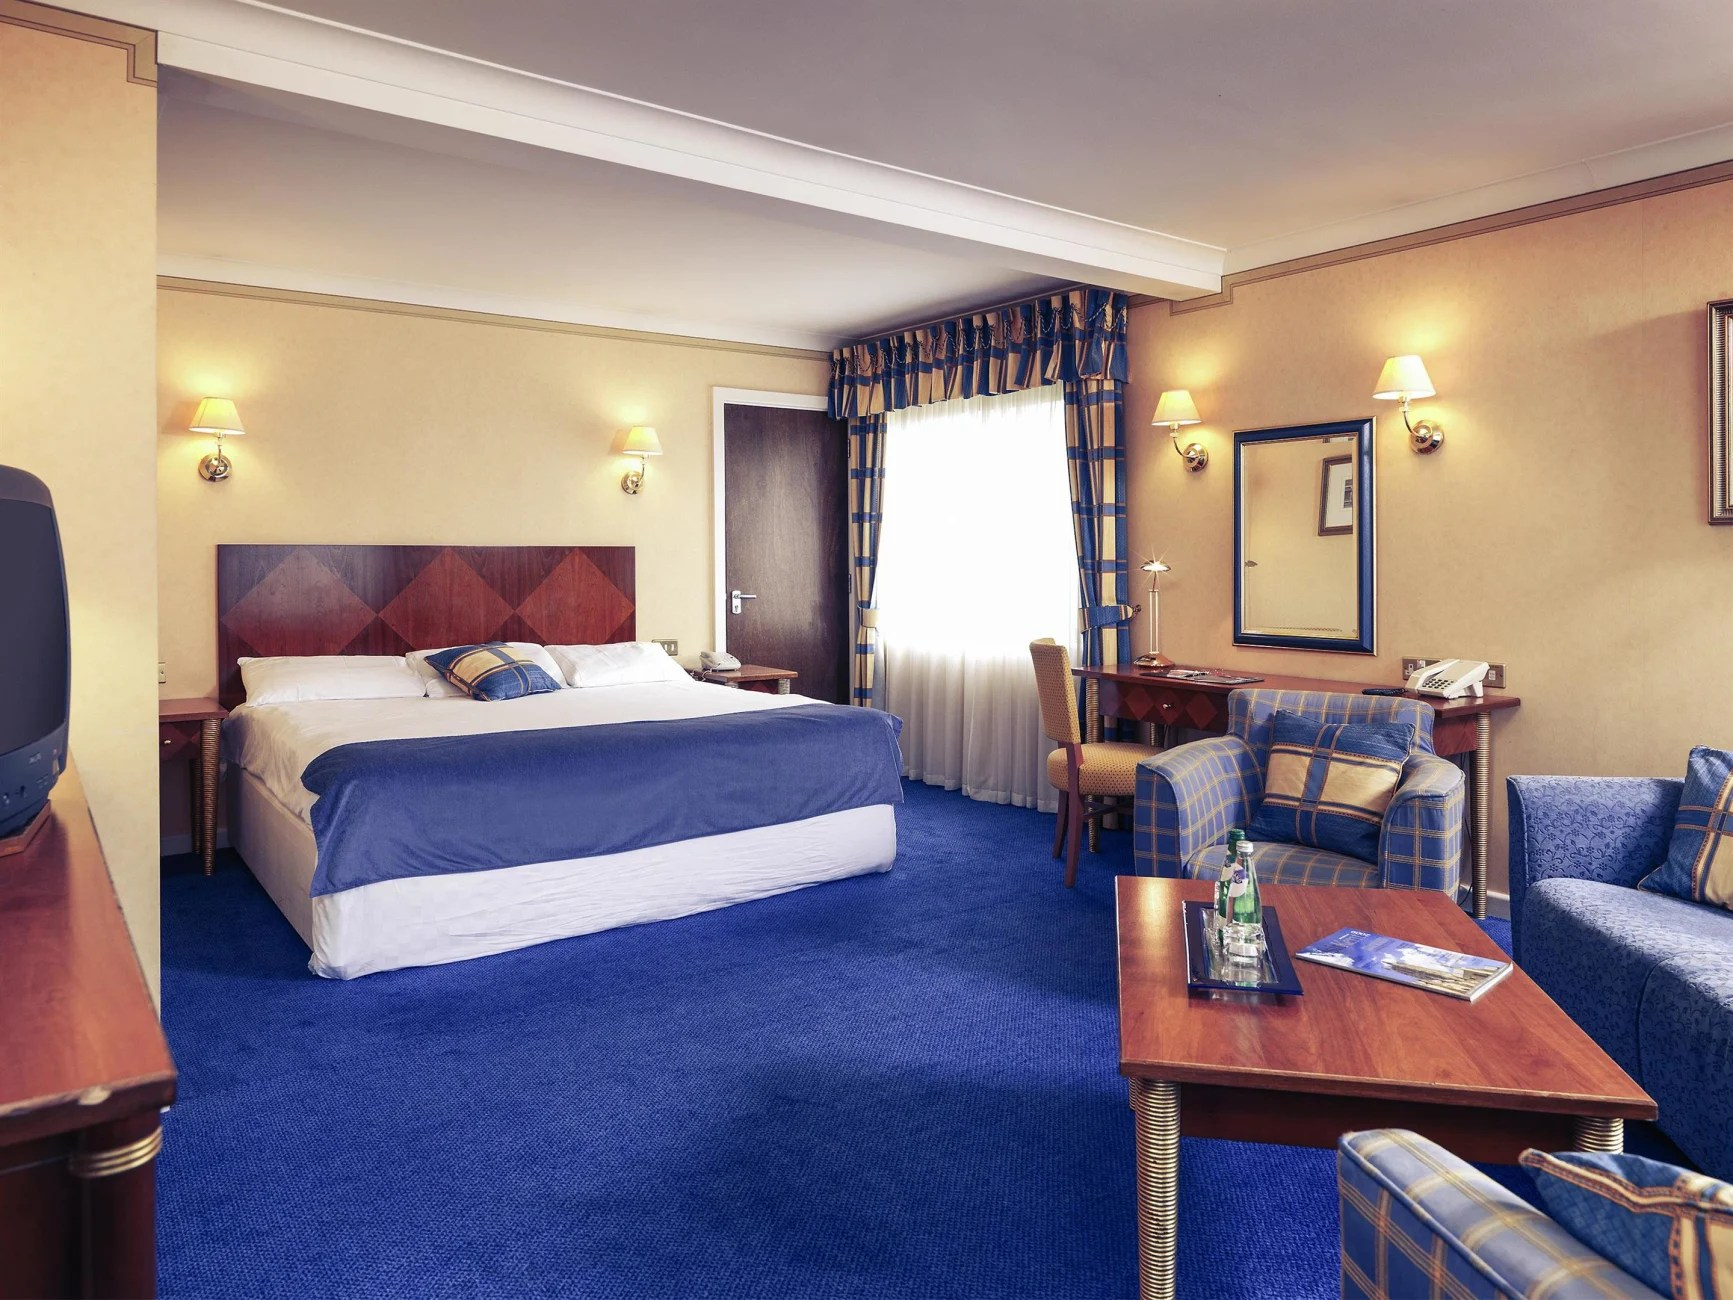 Bed And Breakfast Dartford Hotel Mercure Dartford Brands Hatch Hotel Spa Dartford